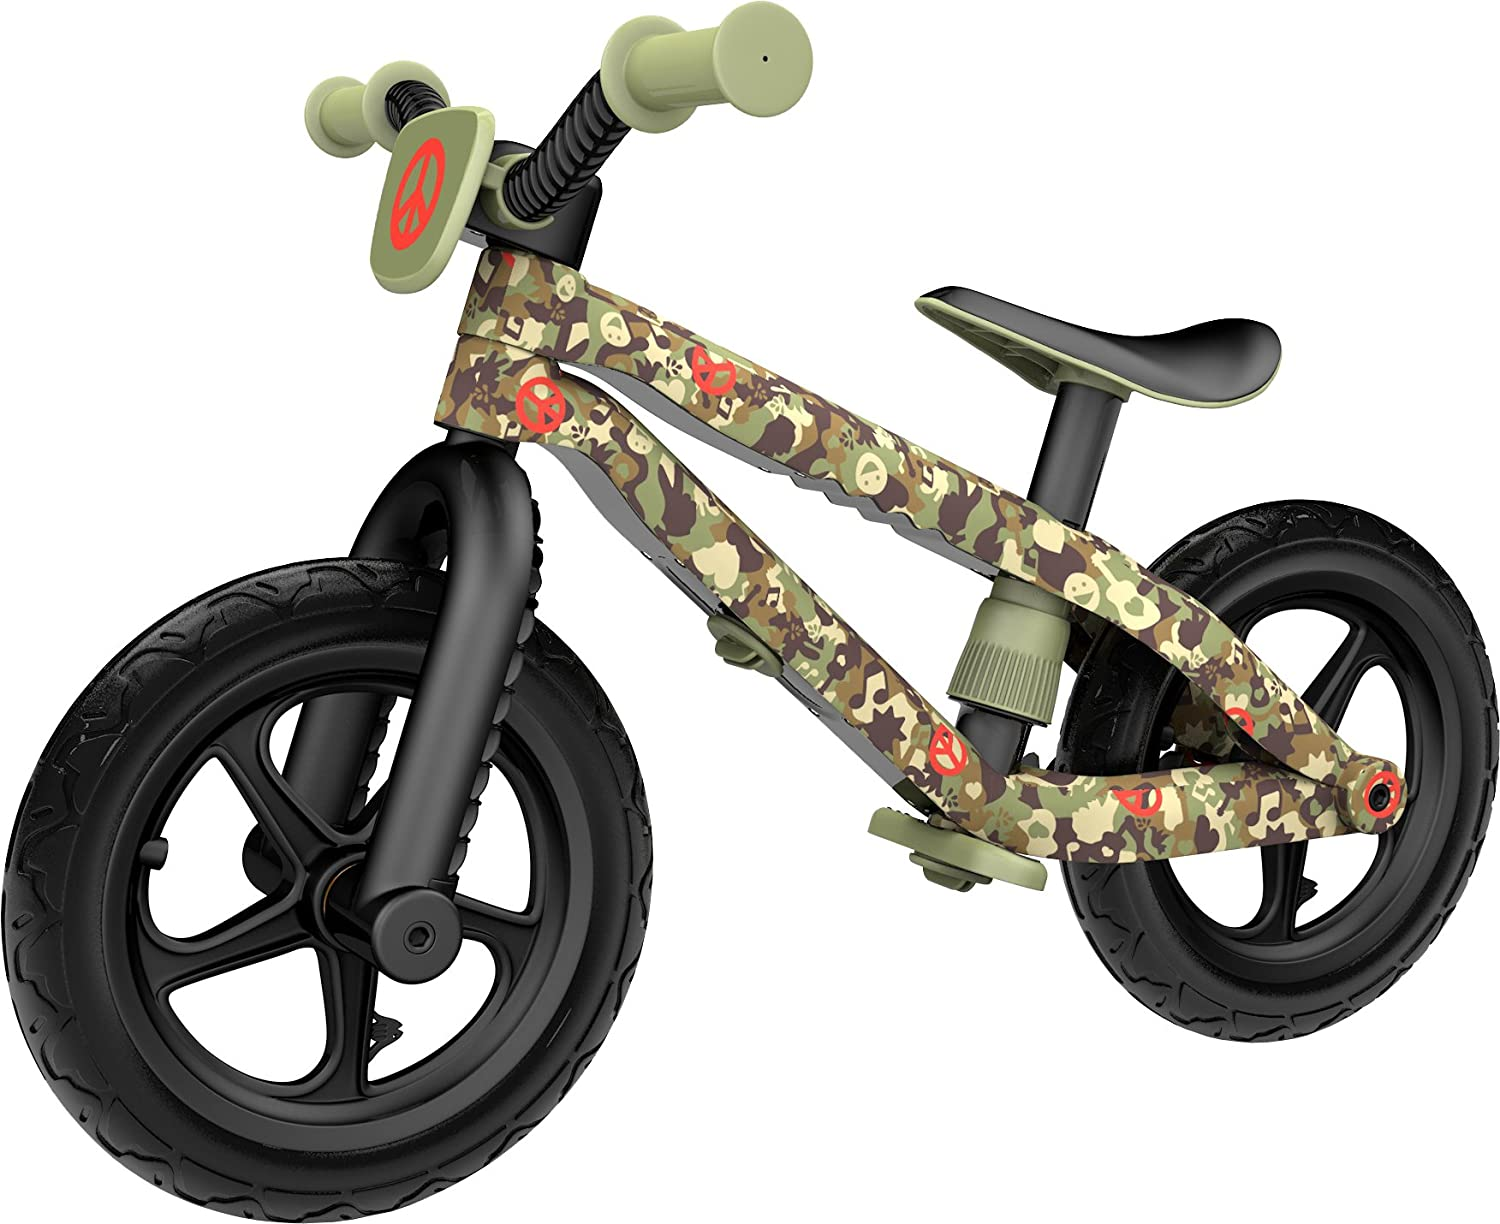 $54.13 Chillafish BMXie-RS: BMX Balance Bike with Airless RubberSkin Tires, Army of Love Edition